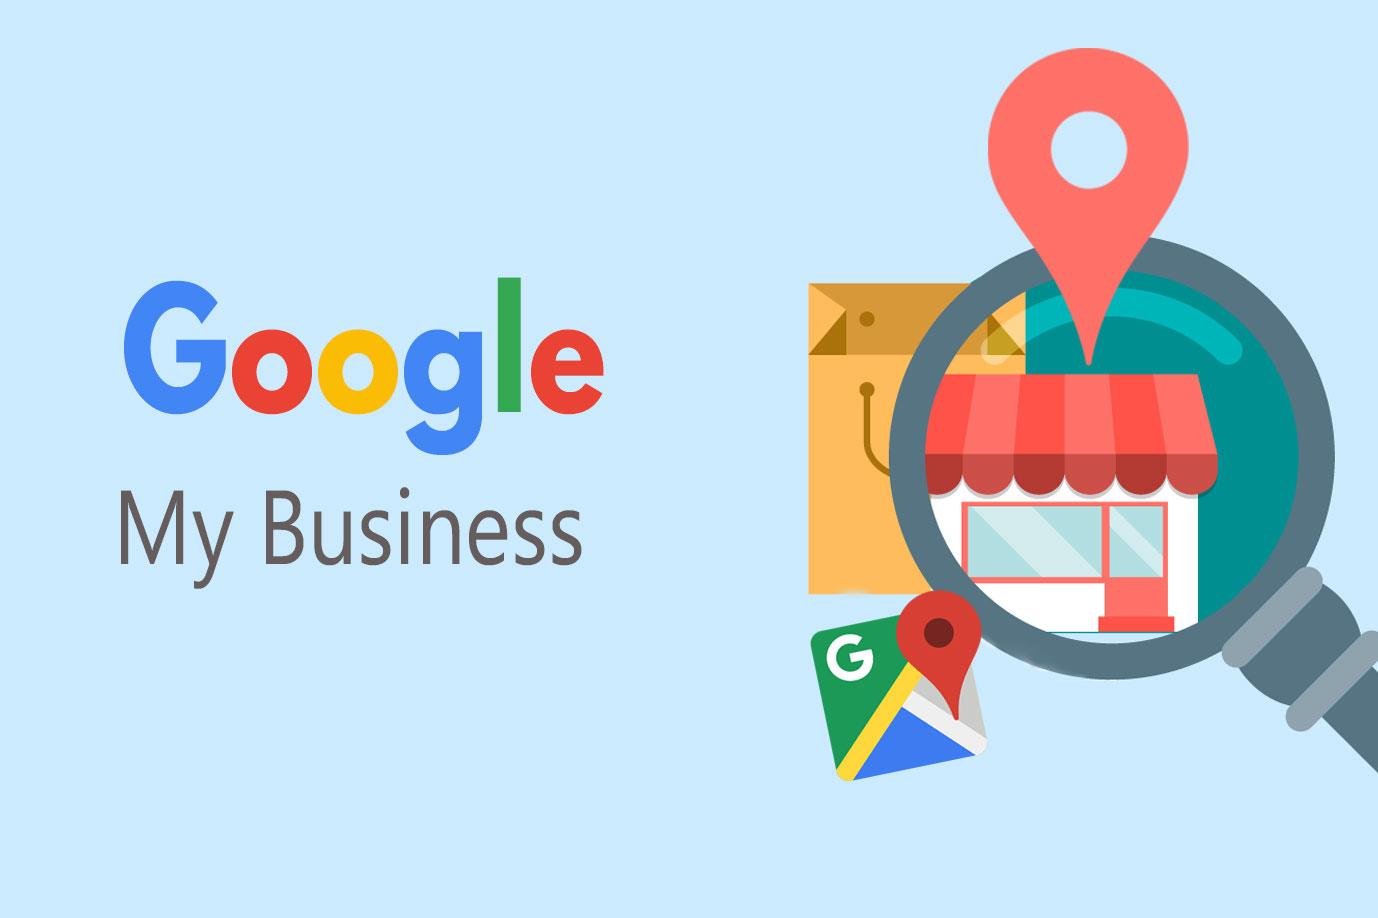 Google My Business in text with local search icon and google maps icon